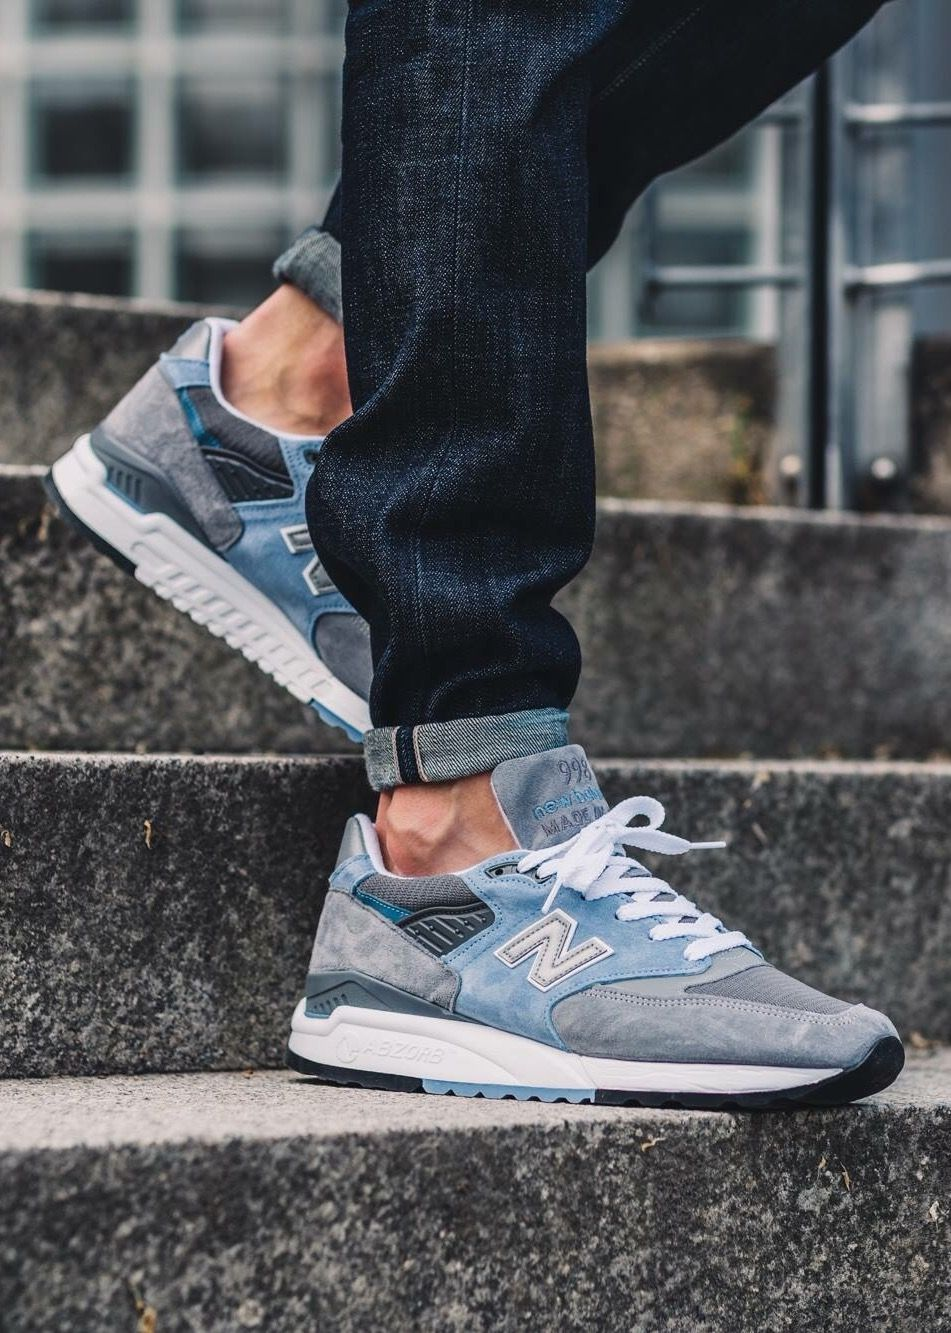 separation shoes 4e993 446b6 New Balance 998 | Sneakers in 2019 | Mens fashion shoes, New ...